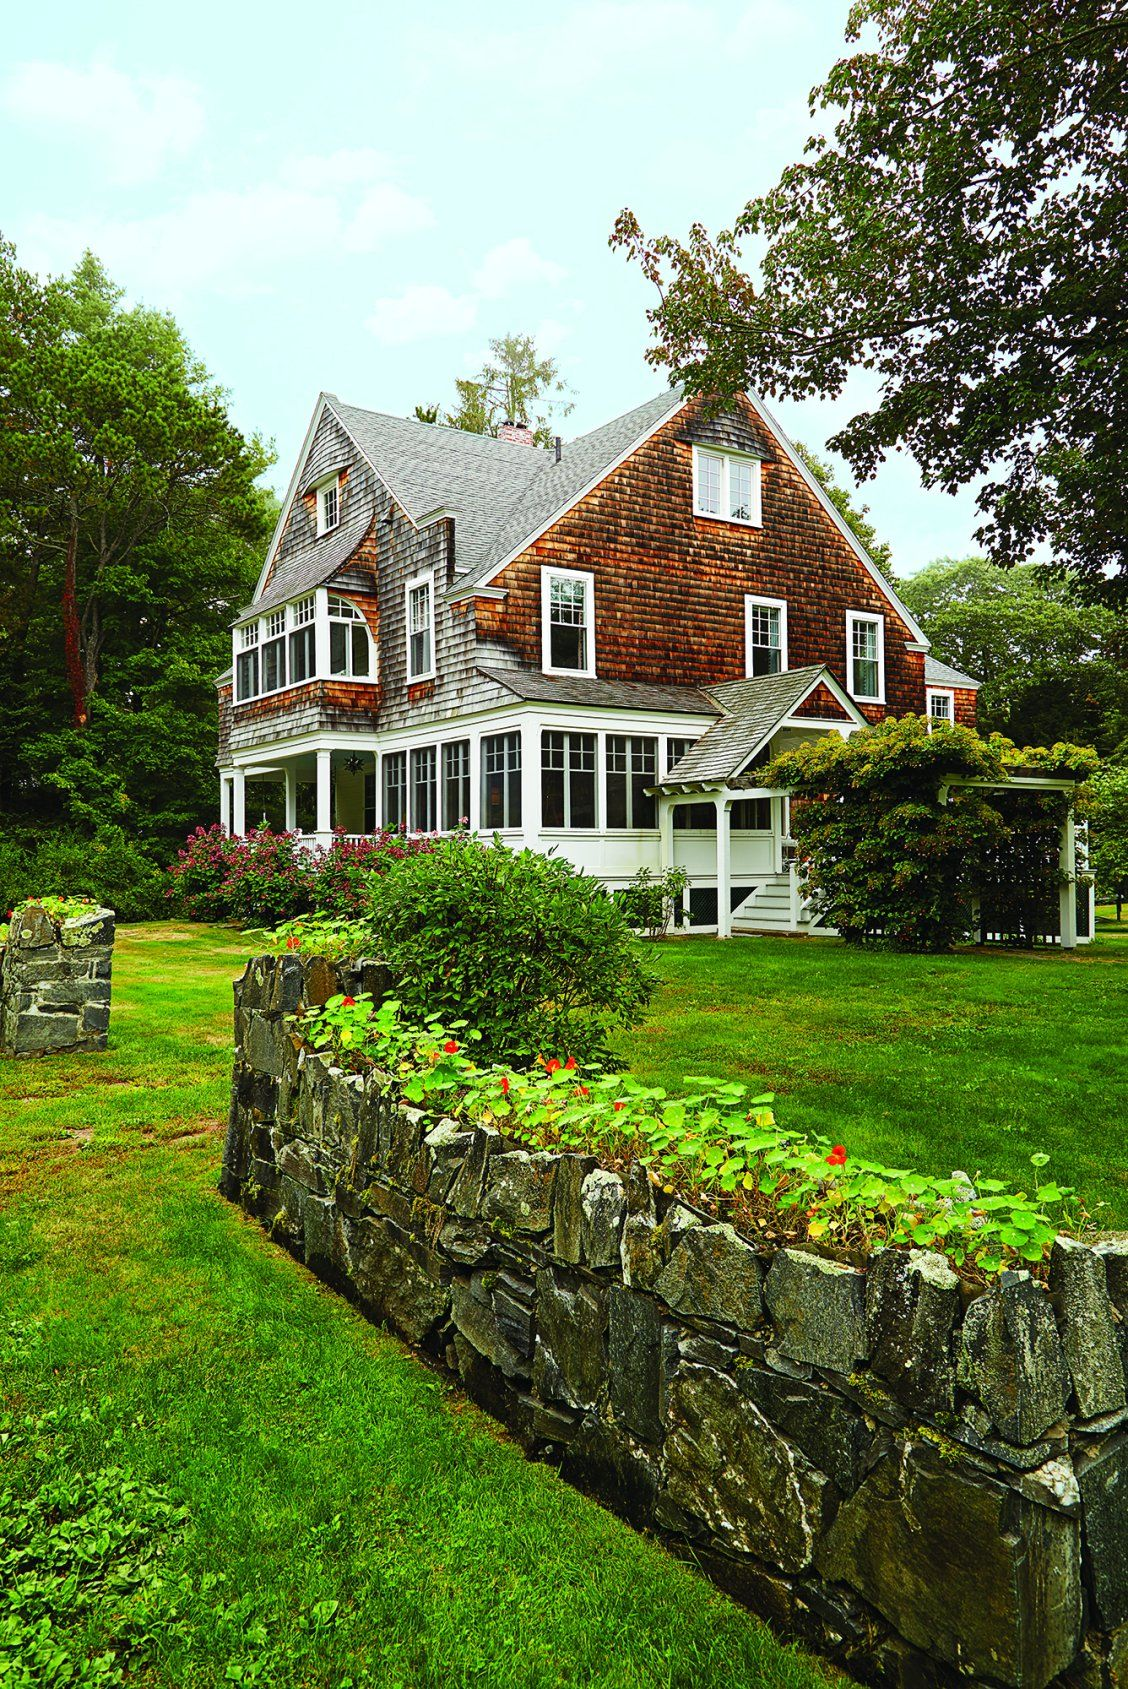 Tour This Colorful Historic Maine Beach Cottage Cottage Shingle Style Homes Maine Beaches